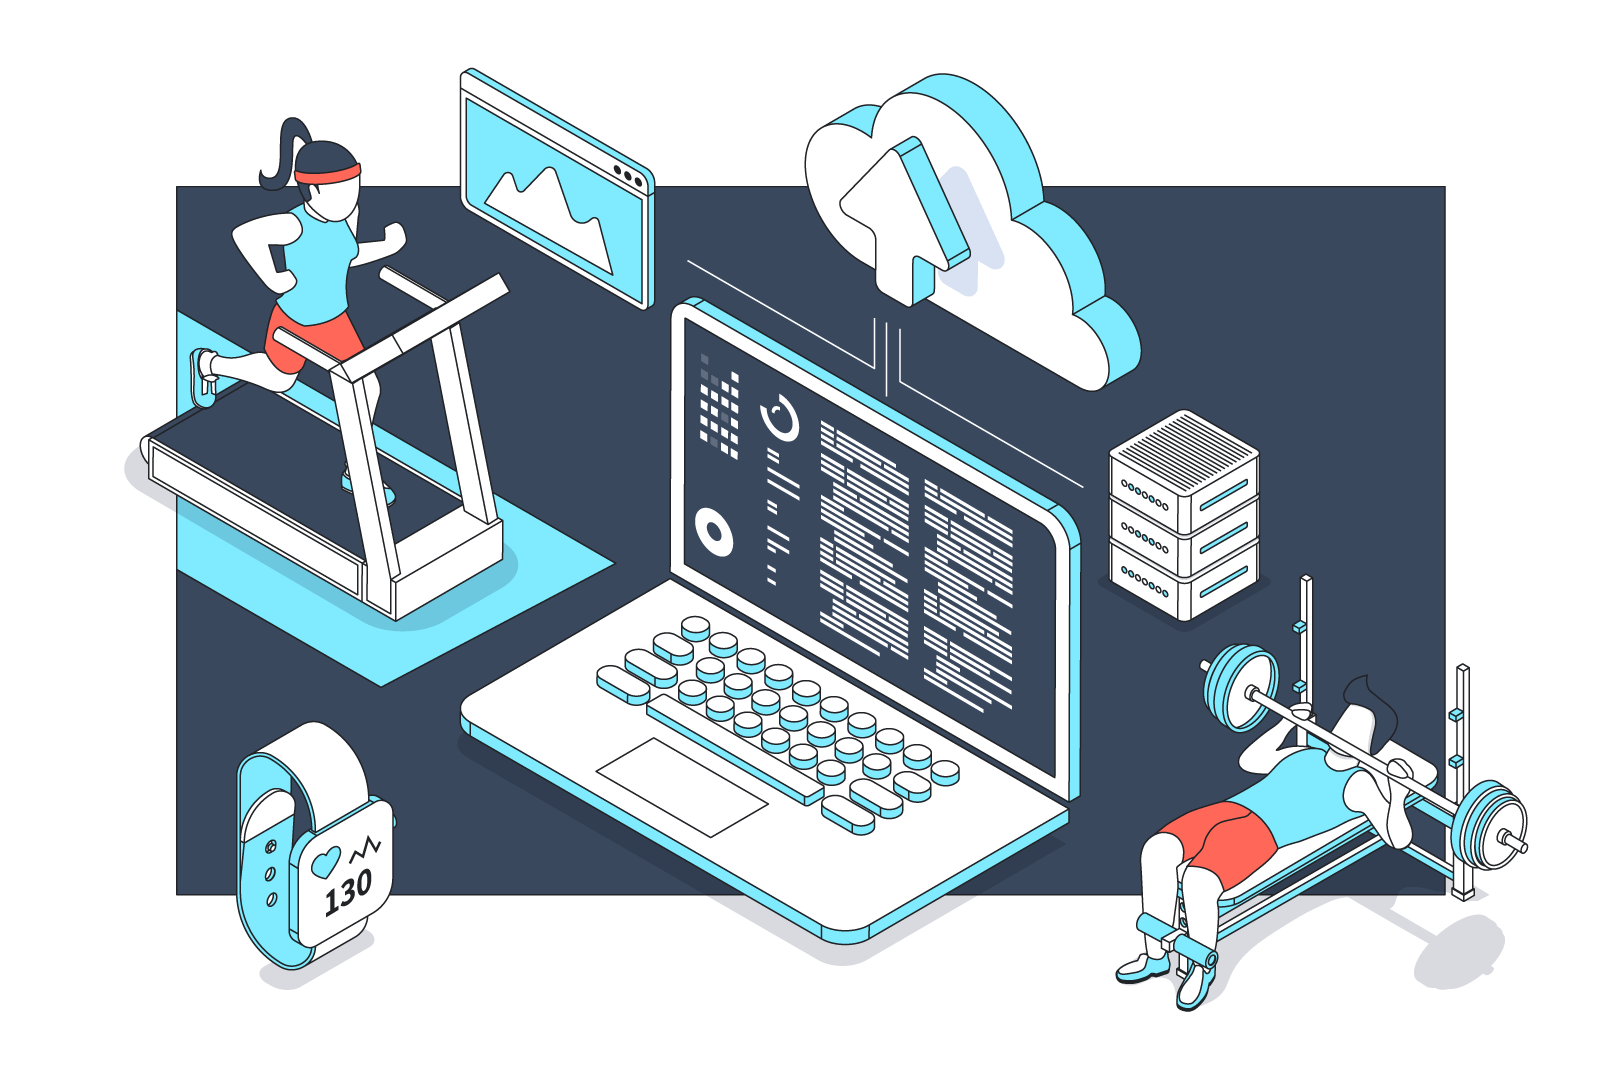 Sports Activities and Serverless – The Architecture for Data-driven Systems